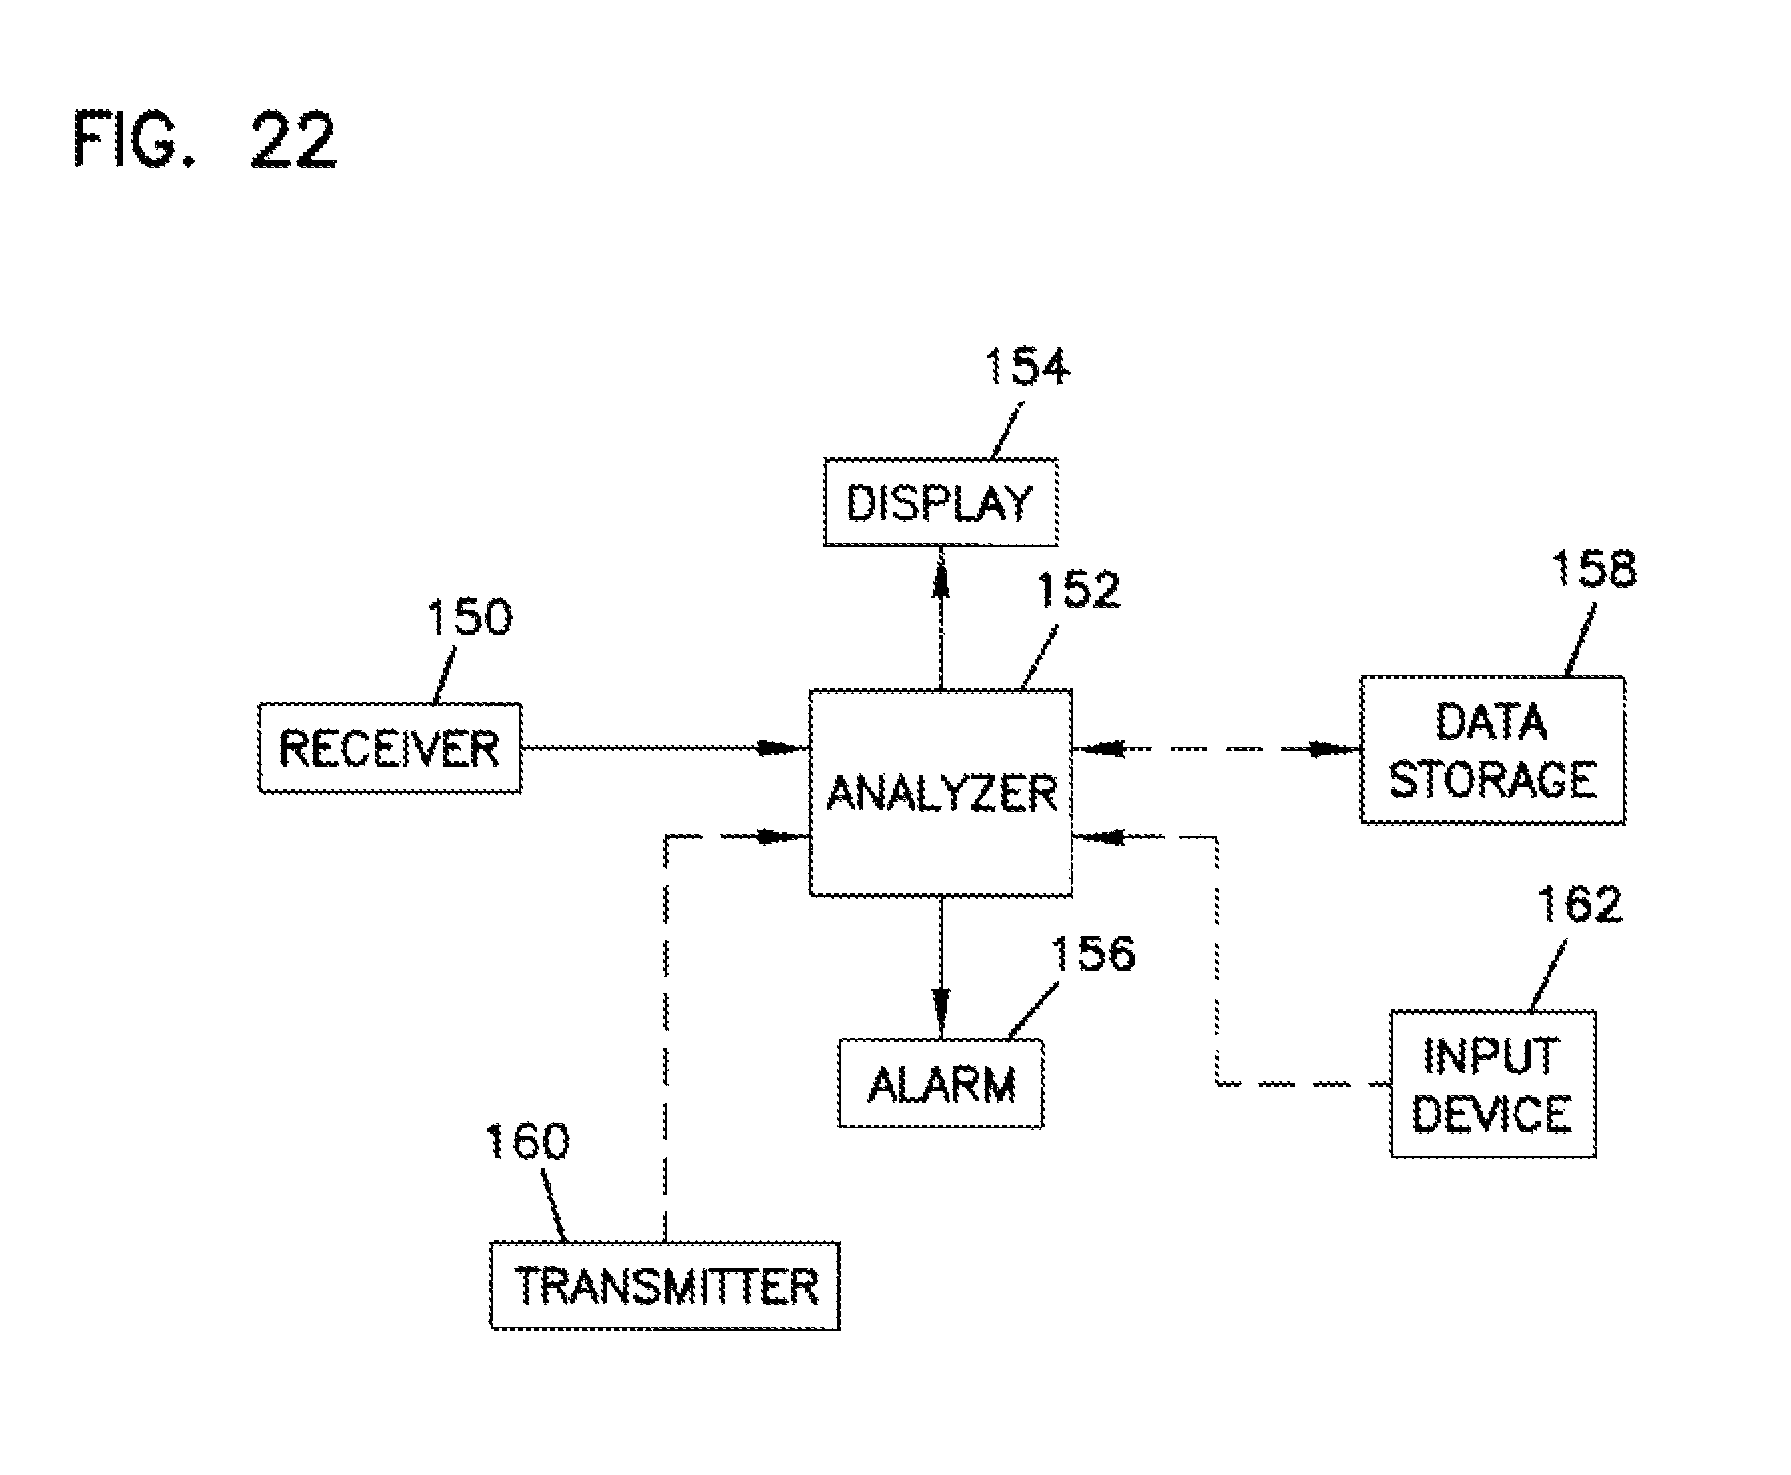 Us9014773b2 Analyte Monitoring Device And Methods Of Use Google Symbol Piezo Speaker Schematic Circuit Microphone Pre Patents